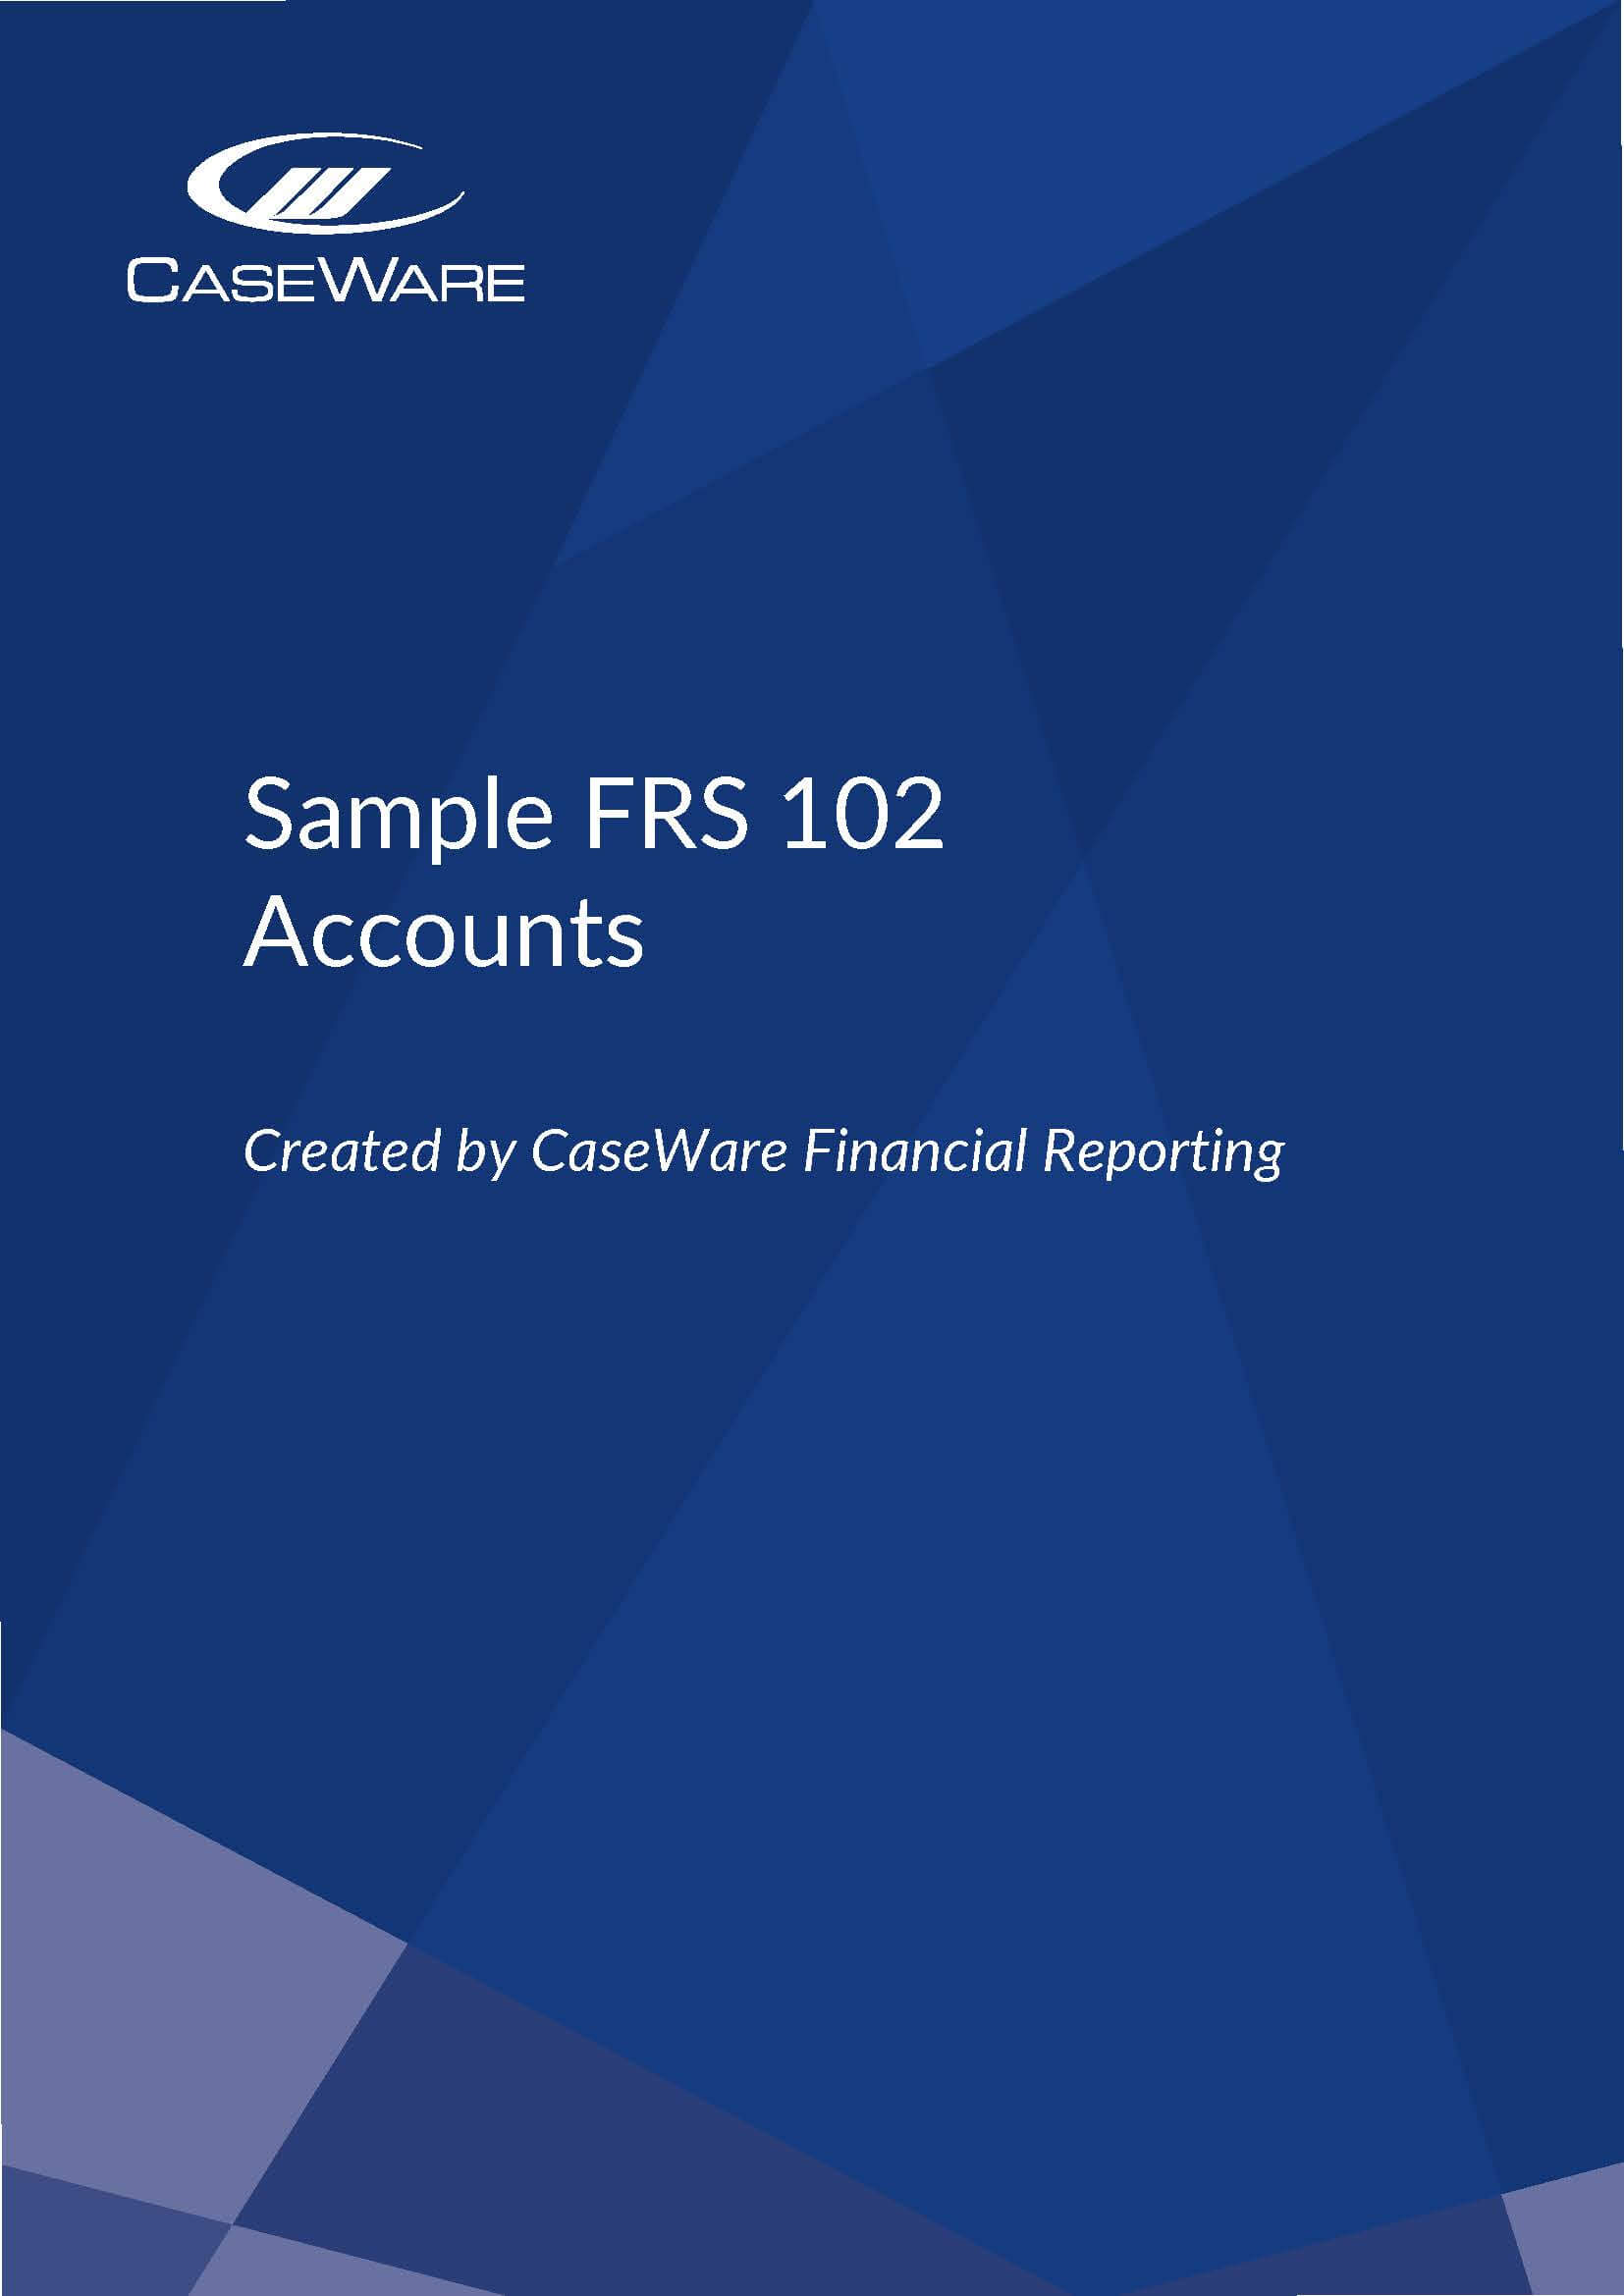 UK FRS 102 31.12.17 Full_Page_01.jpg